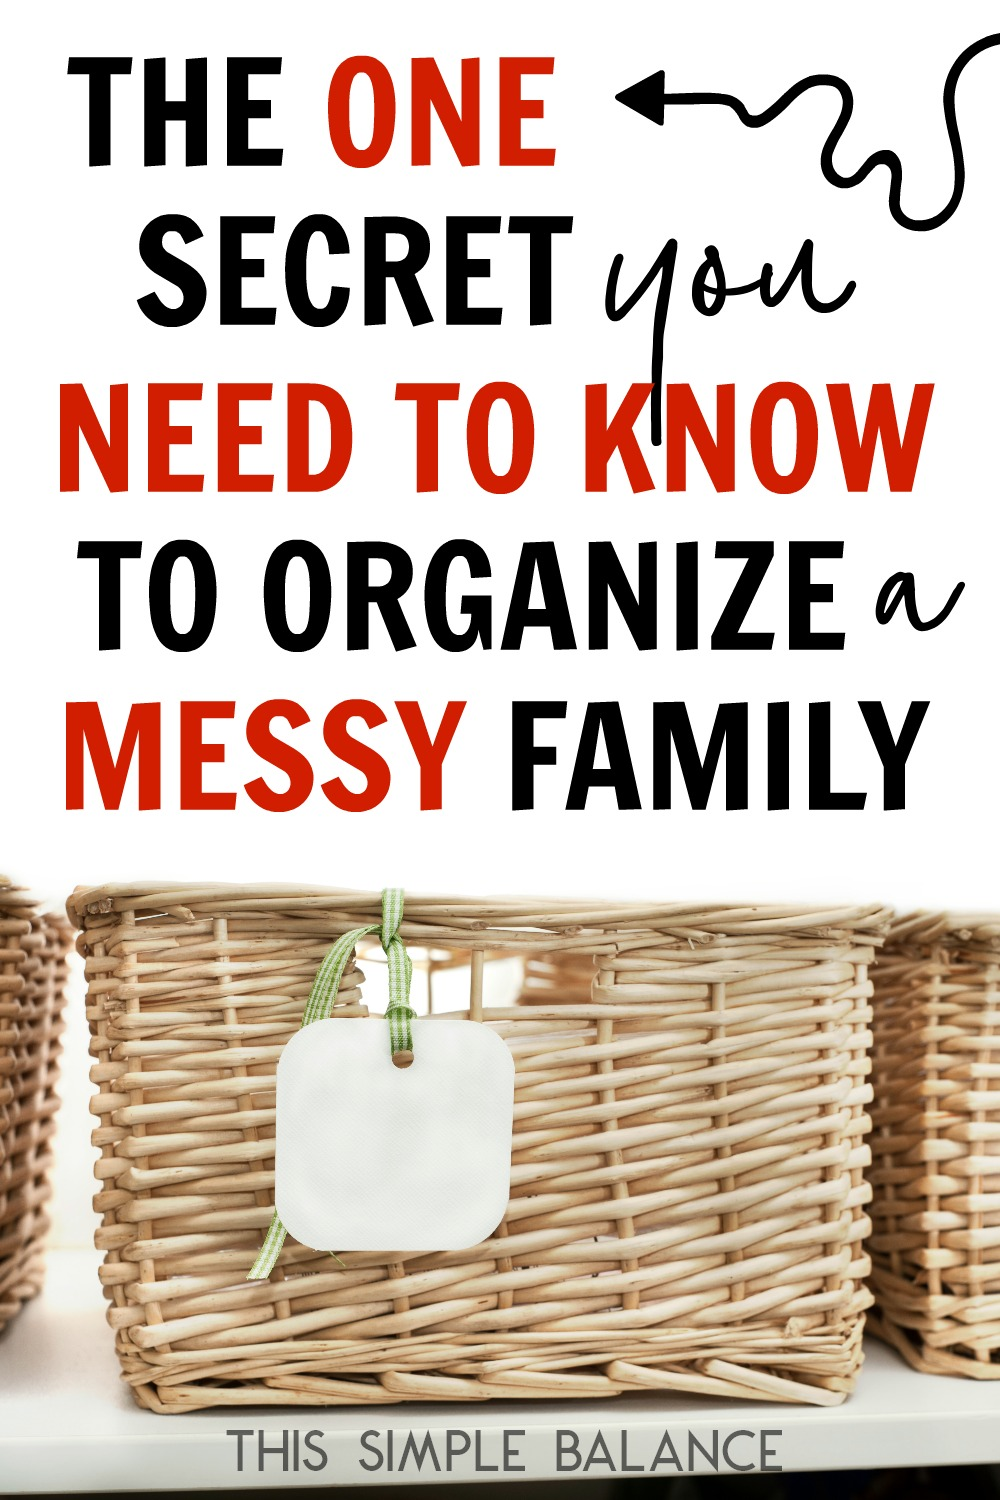 Tips for Organizing Your House with Kids: Need ideas for organizing your house with kids when your family seems chronically messy? This ONE simple organizing secret will change the way you organize, so your home will stay organized for good.